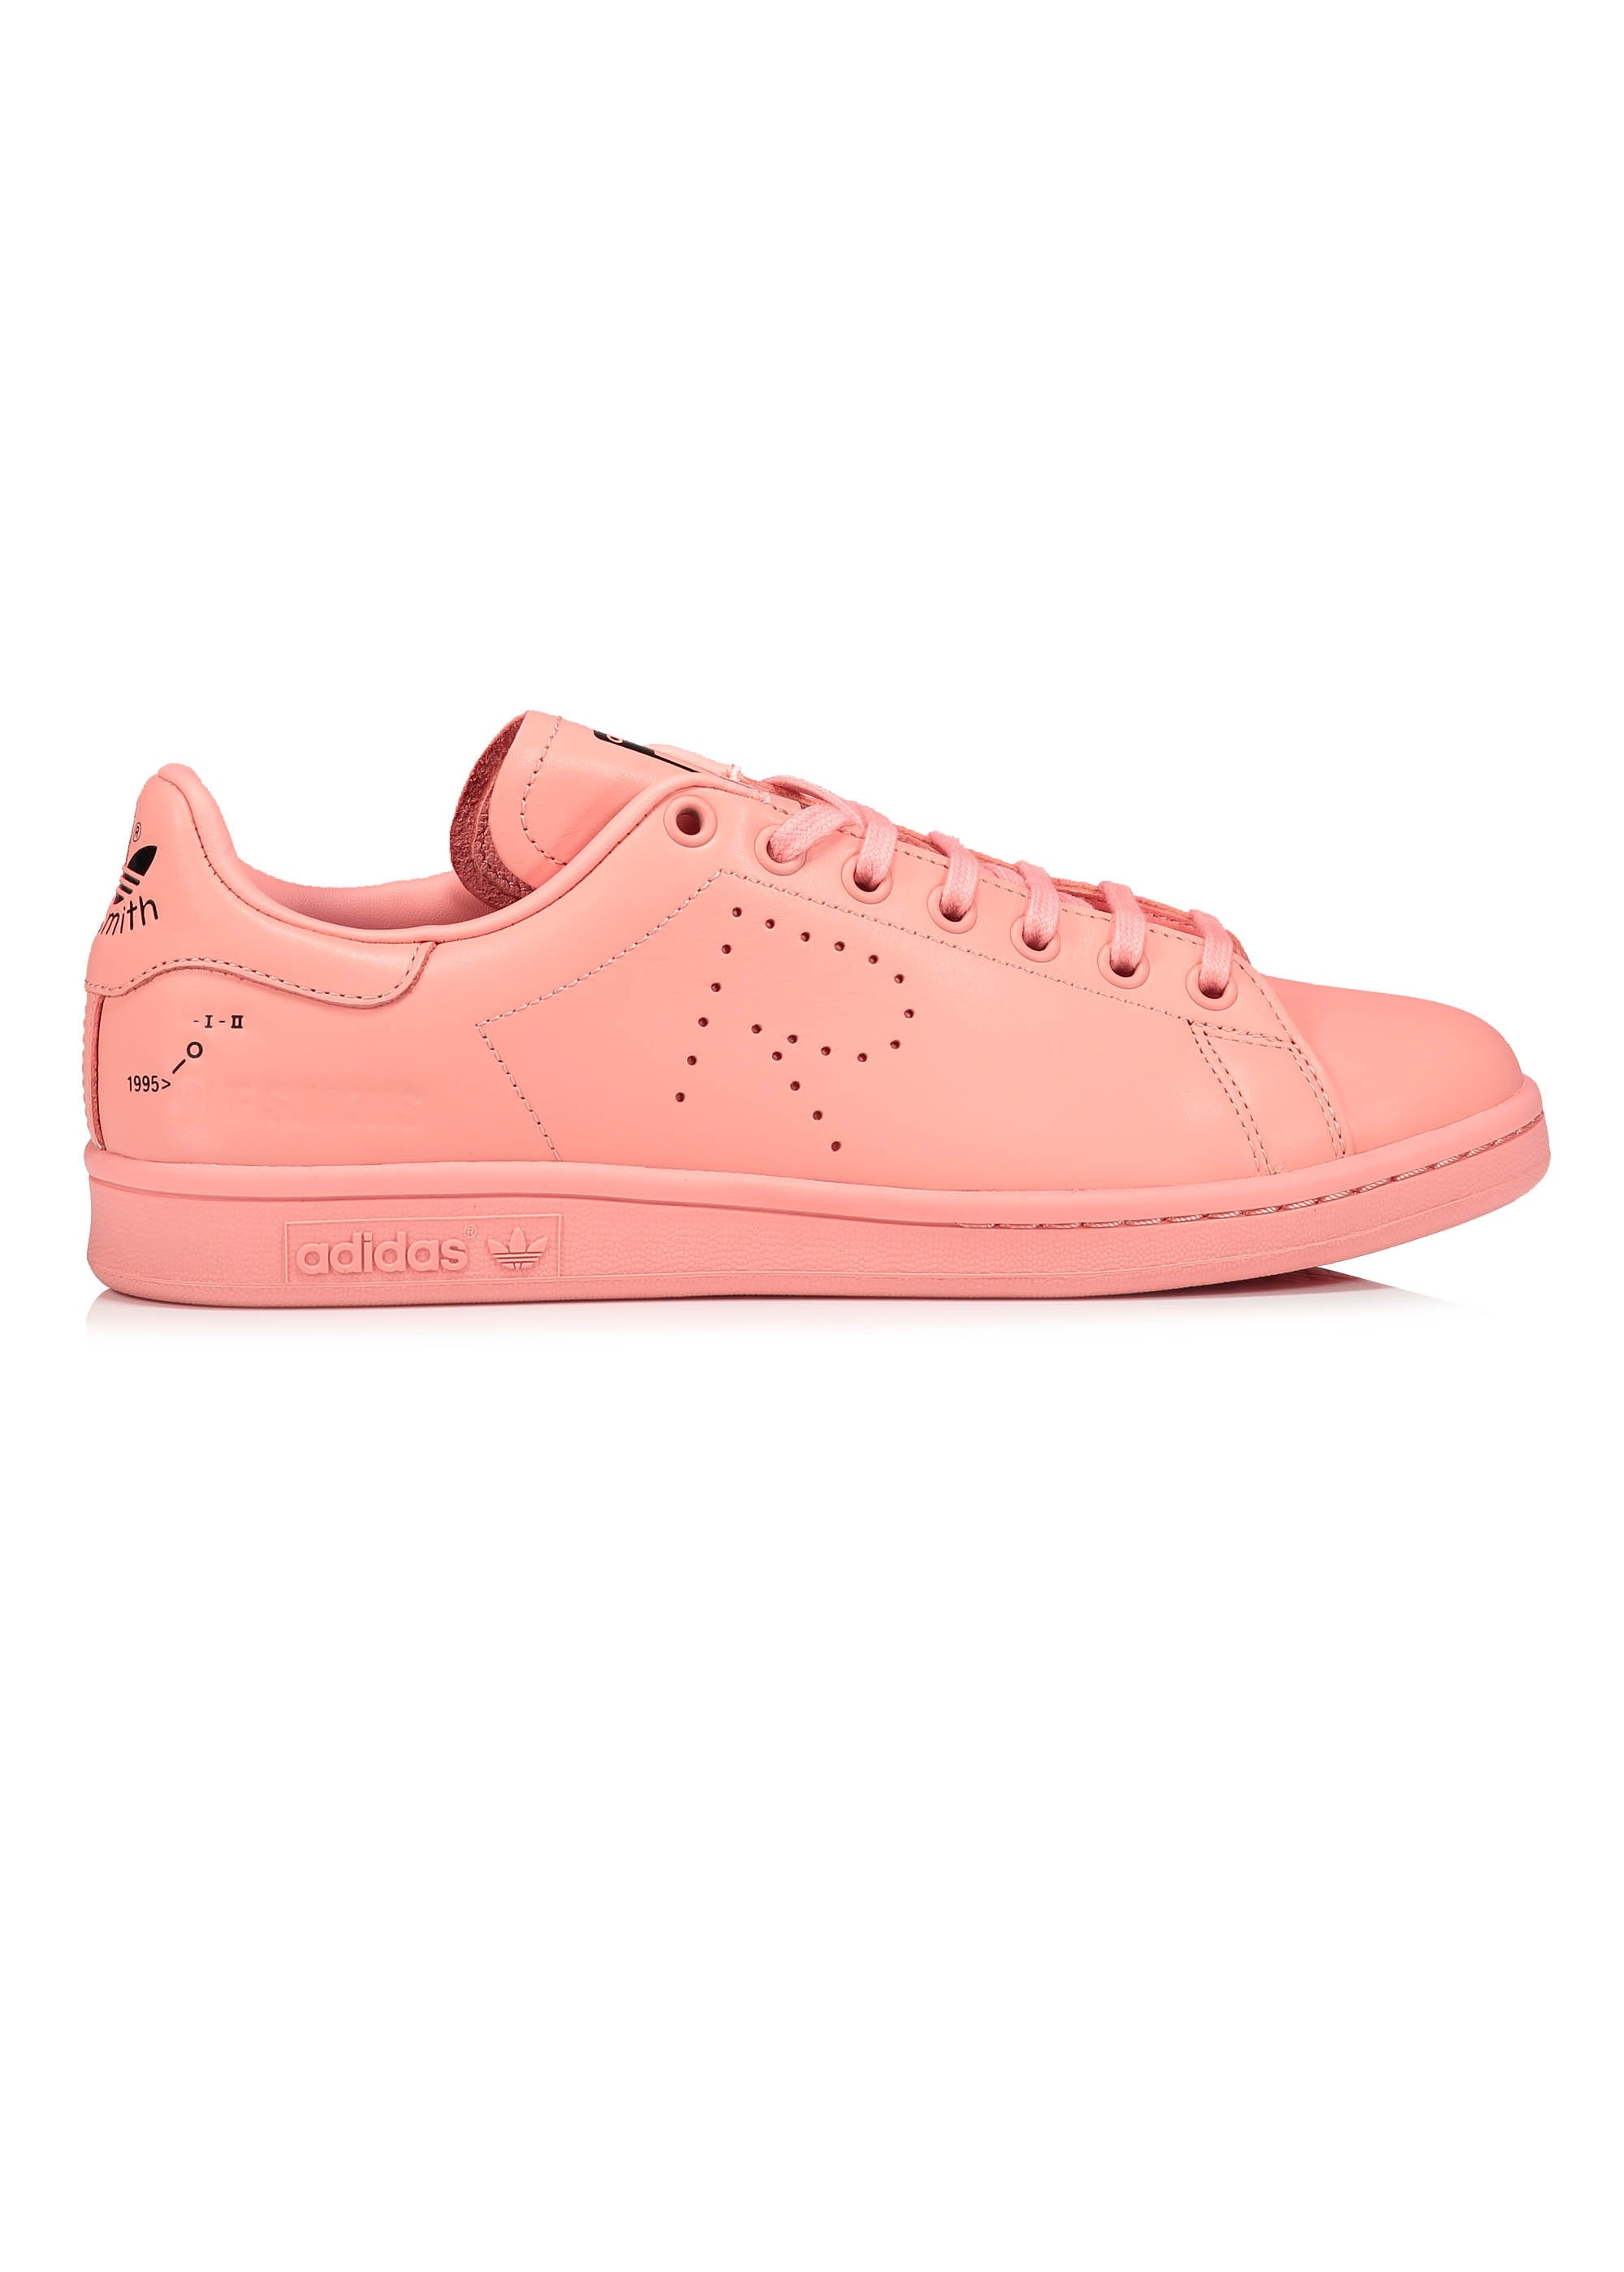 huge discount b2b94 b0480 adidas Originals by Raf Simons RS Stan Smith - Pink